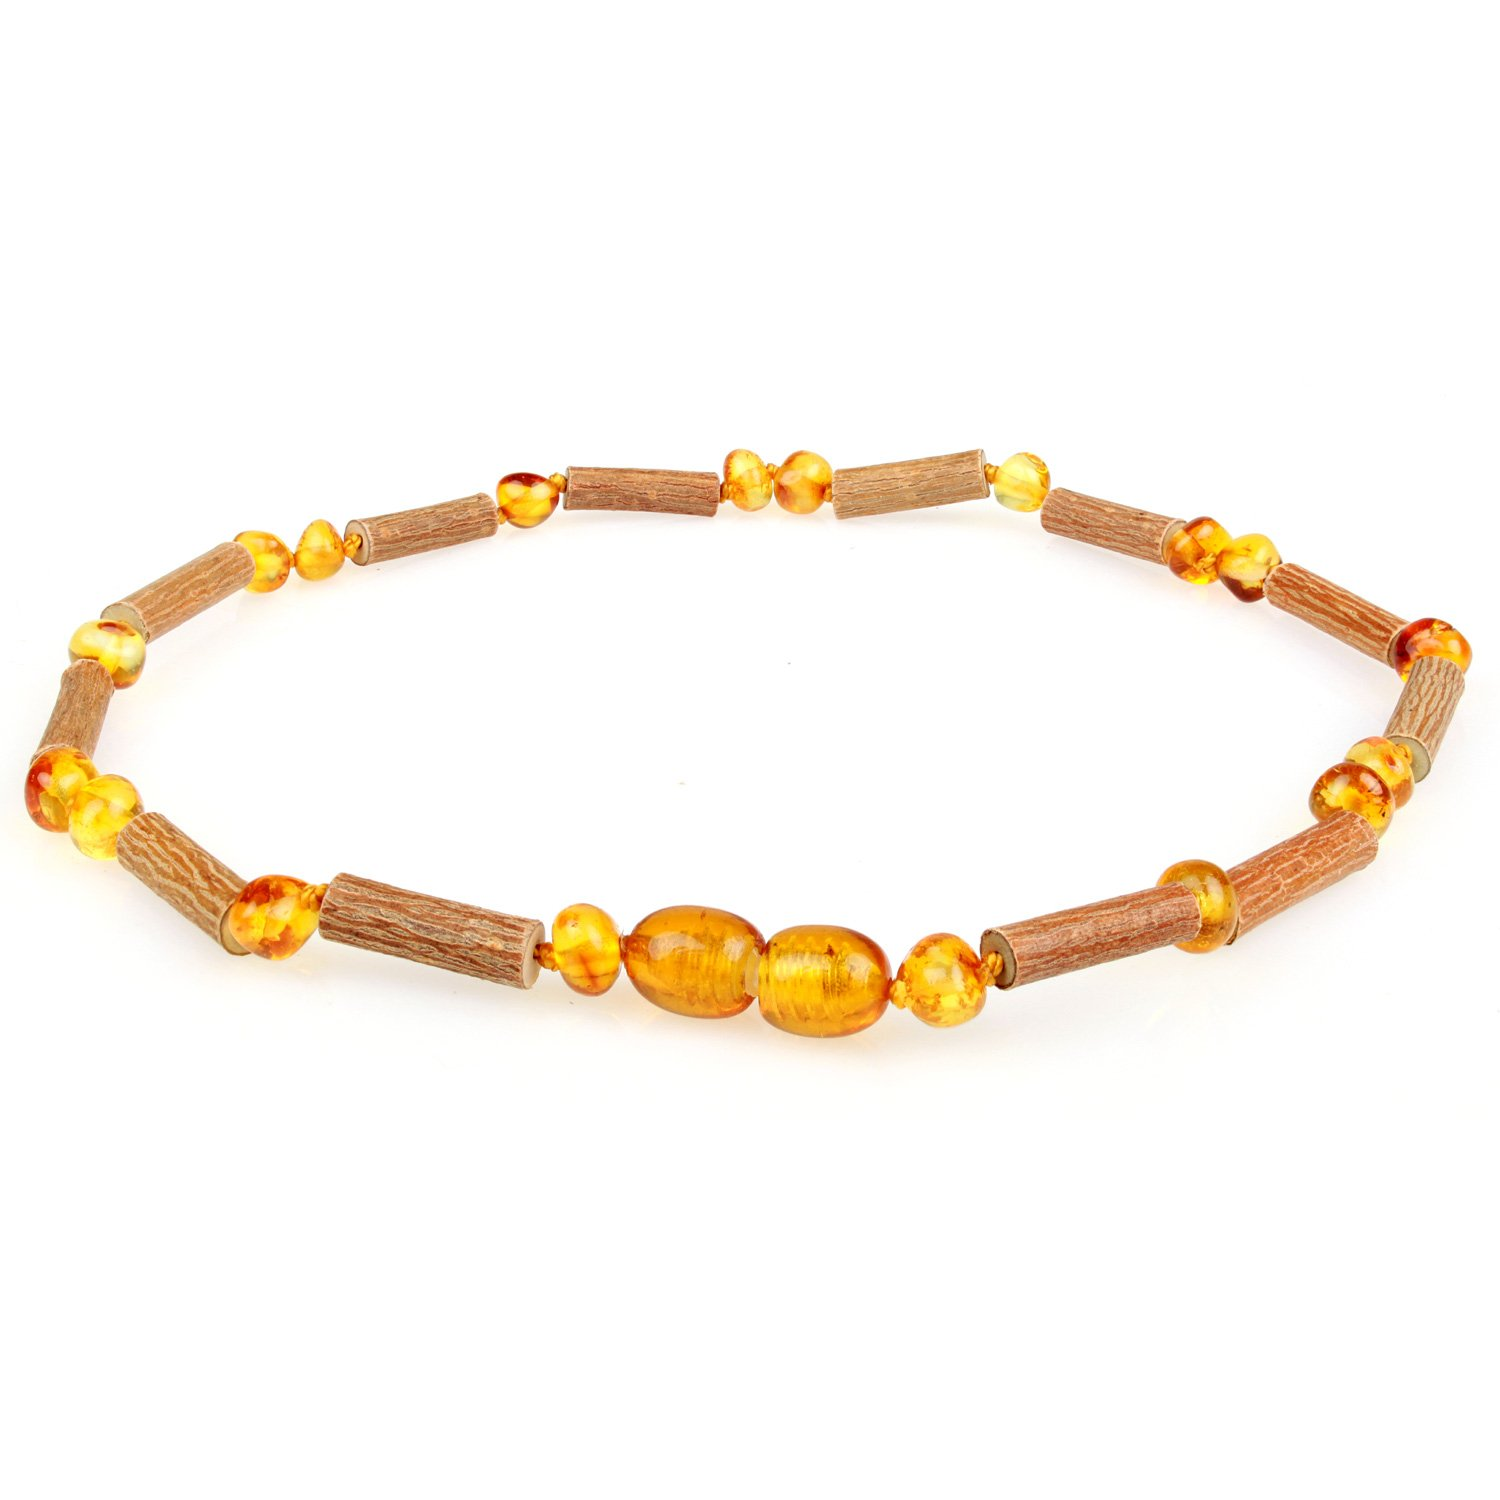 Amber & Hazelwood Necklace (Unisex, Cognac Color, 12.5 Inches), Lab-Tested, 100% Certified, Individually Knotted for Babies & Toddlers. Natural Pain Relief for Eczema, Colic, Reflux & Teething